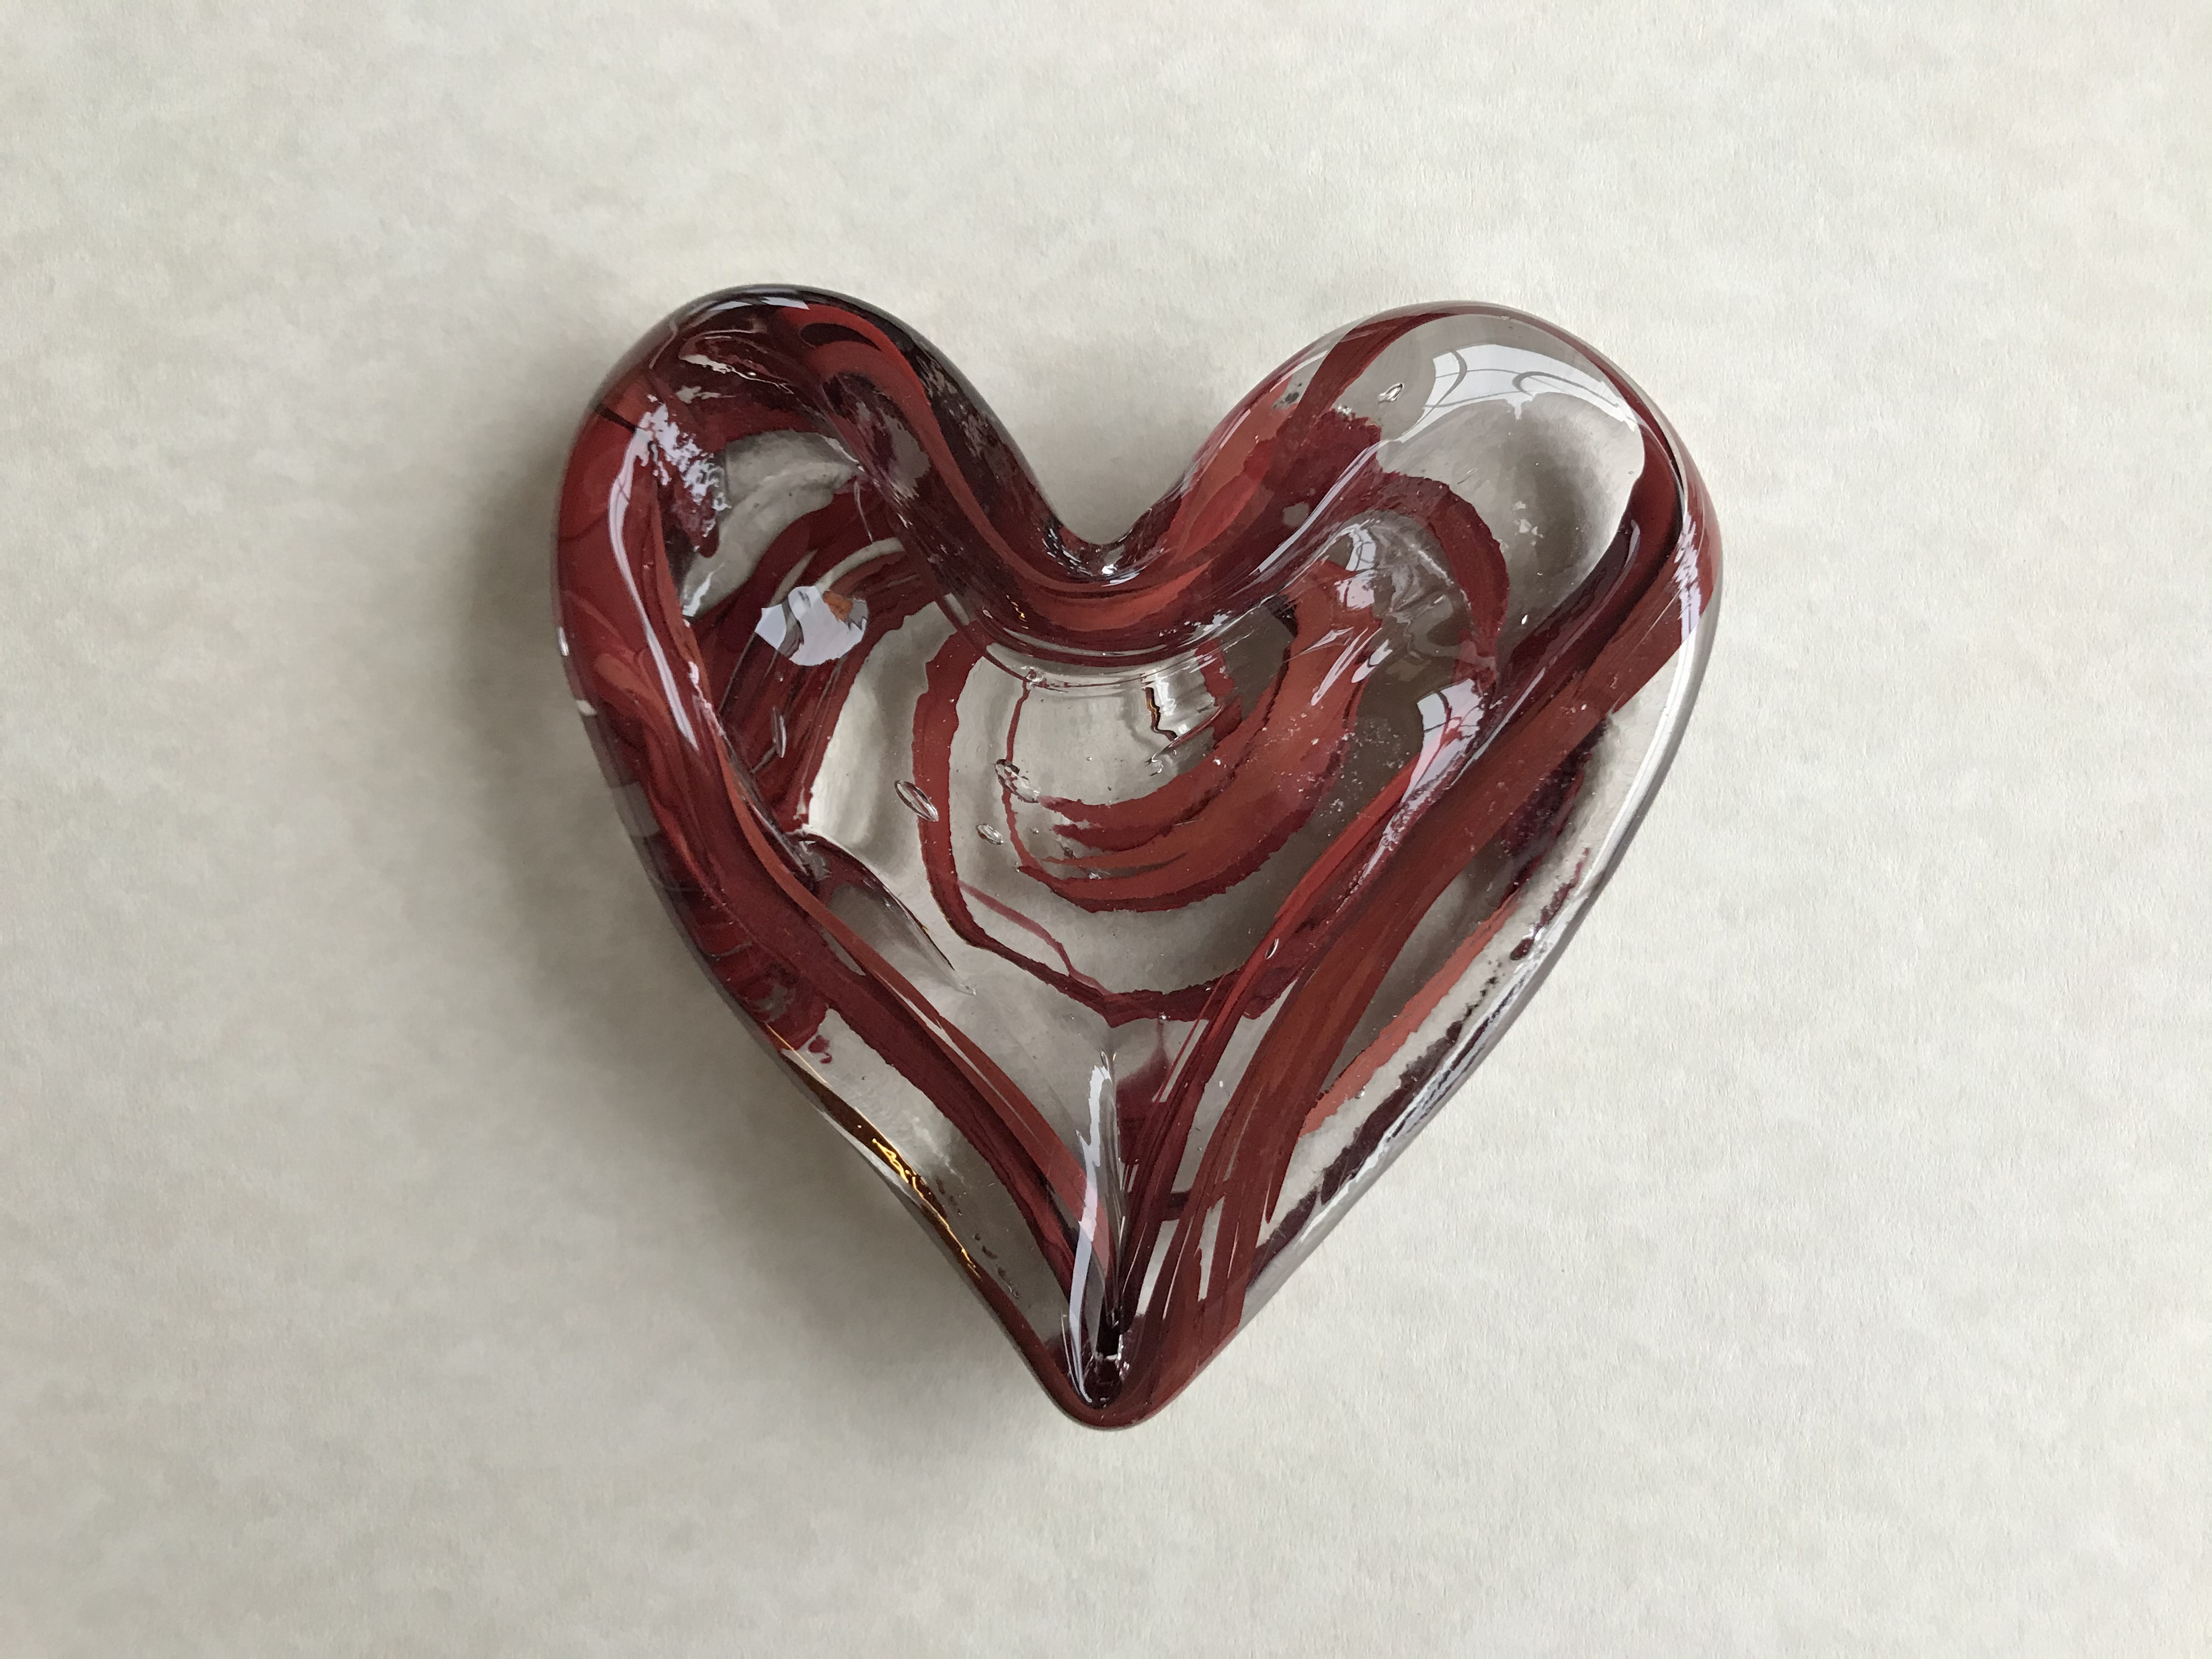 The SGA Faculty Appreciation Awards will be presented annually to one faculty member in each of the university's colleges. The award is a one-of-a-kind, handmade glass heart created by Pine Bluff glass artist James Hayes in the colors of UA Little Rock.